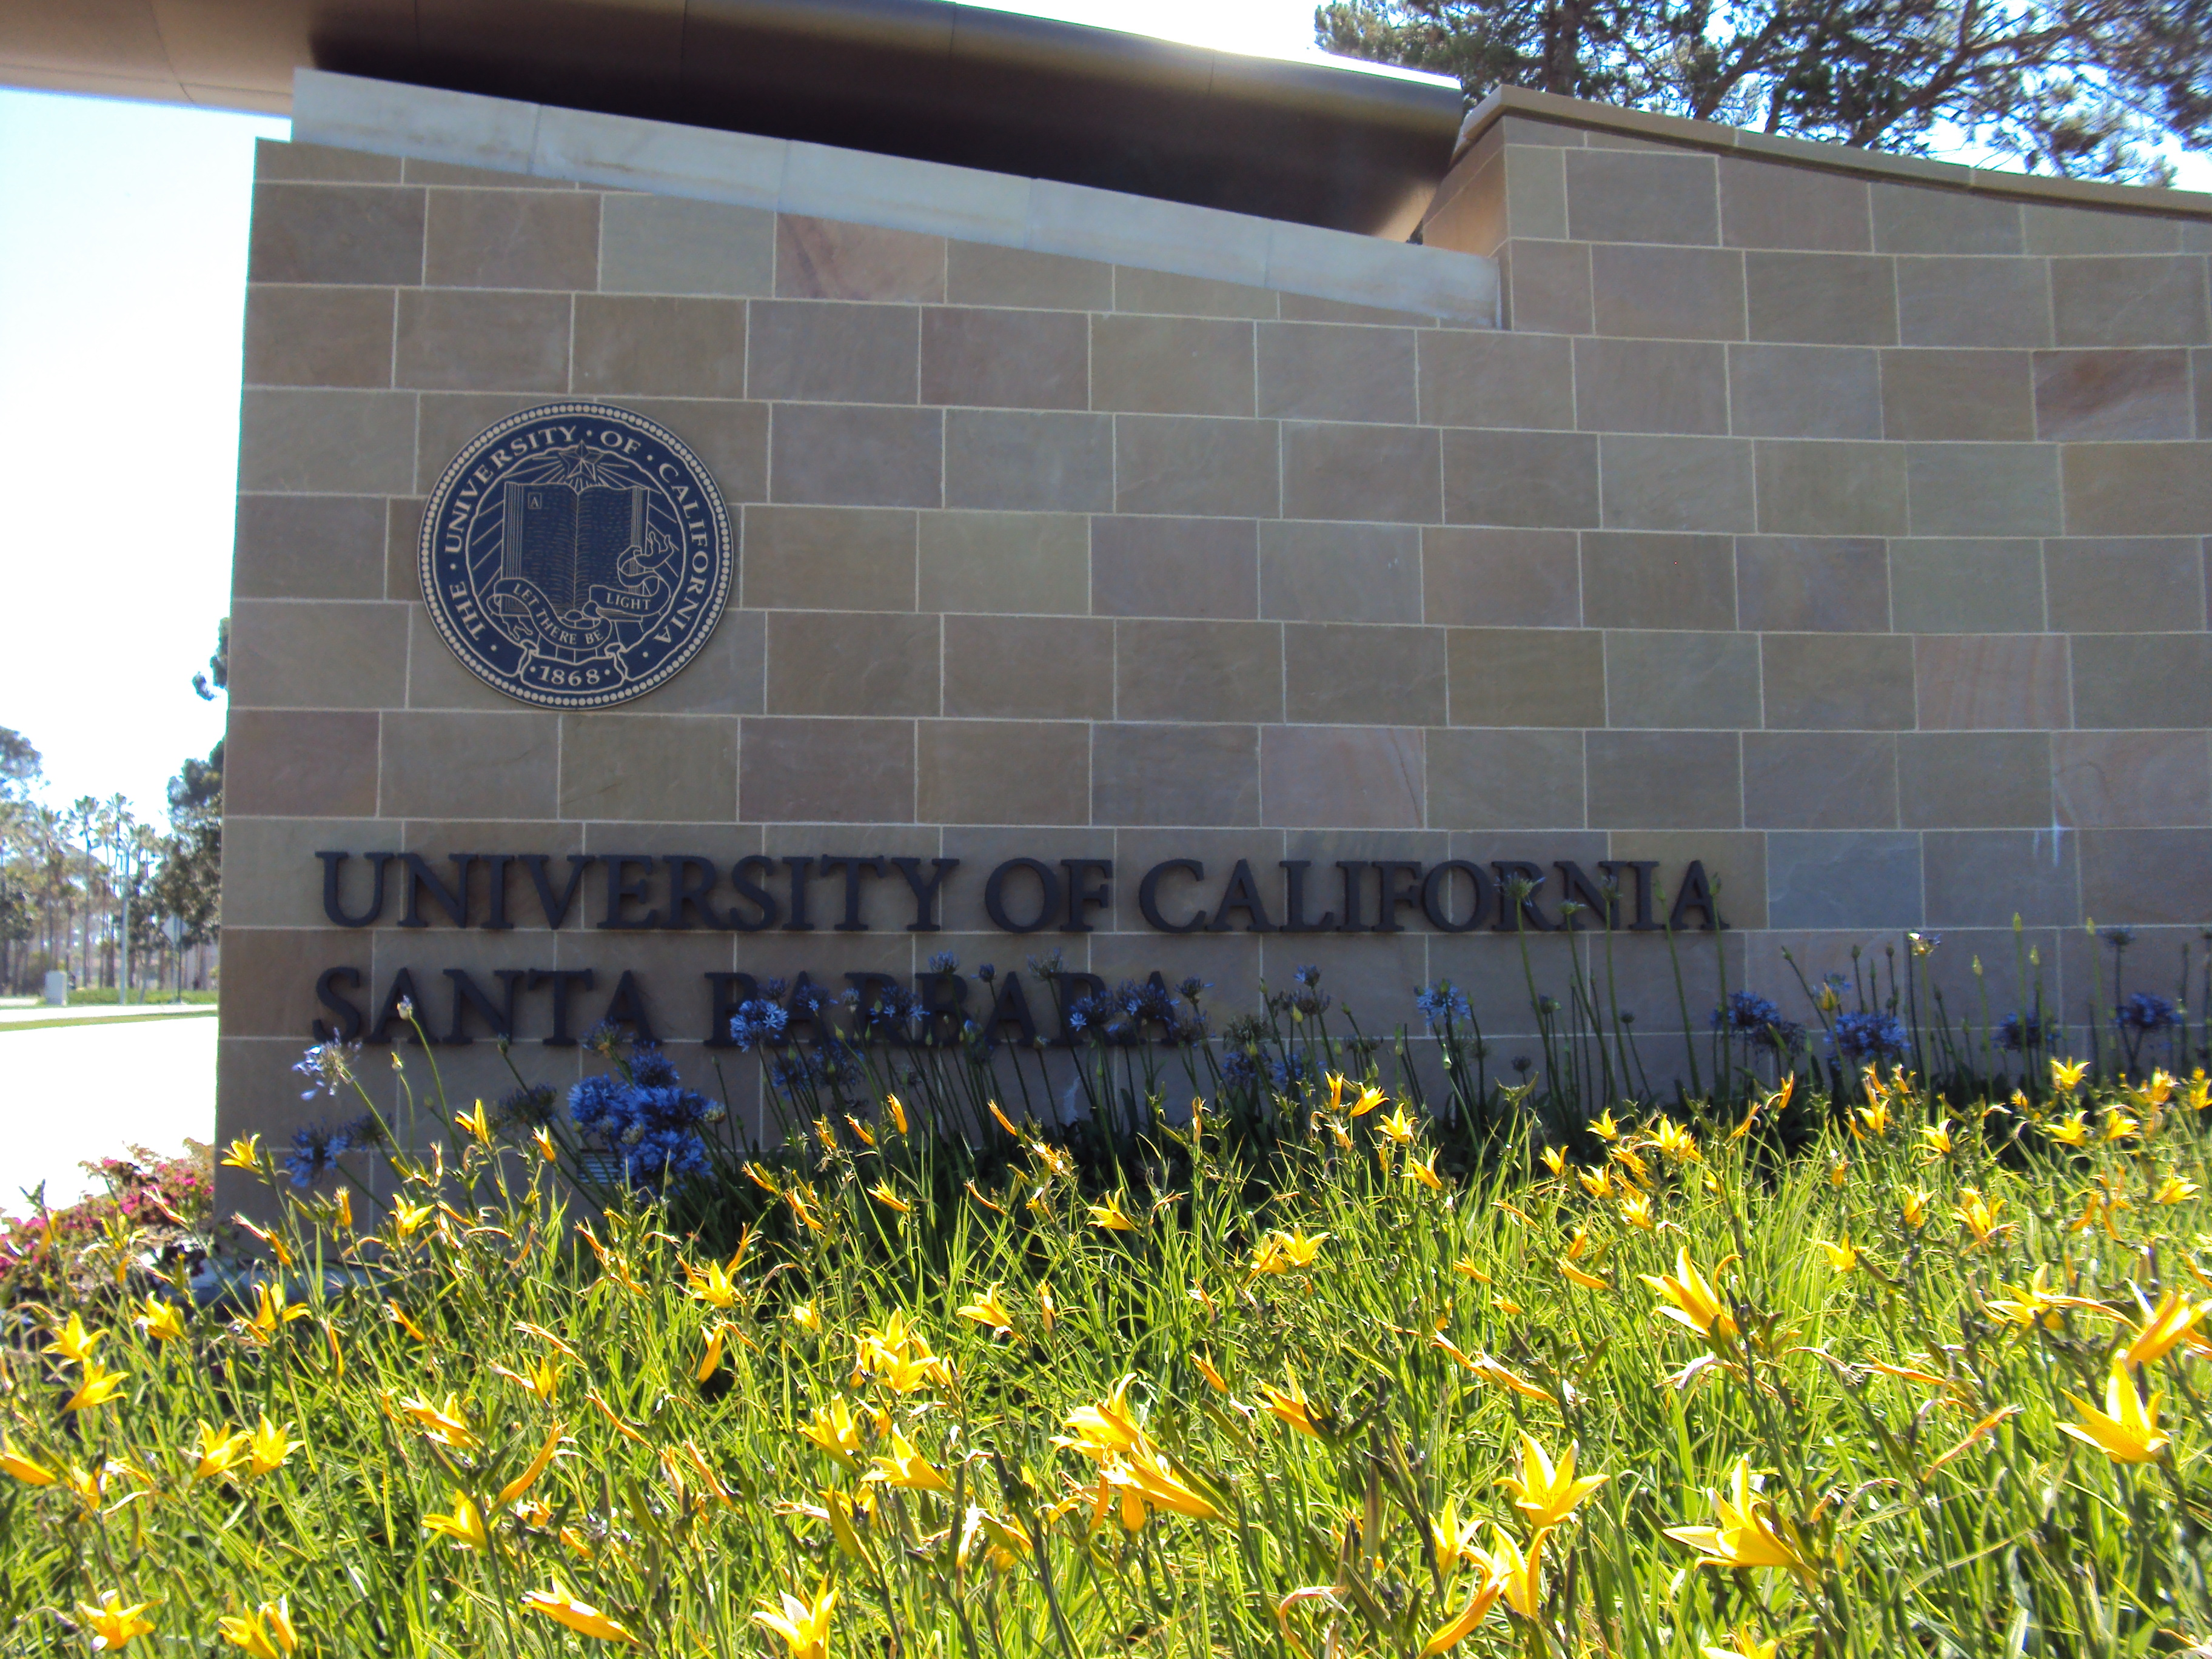 The University of California Santa Barbara